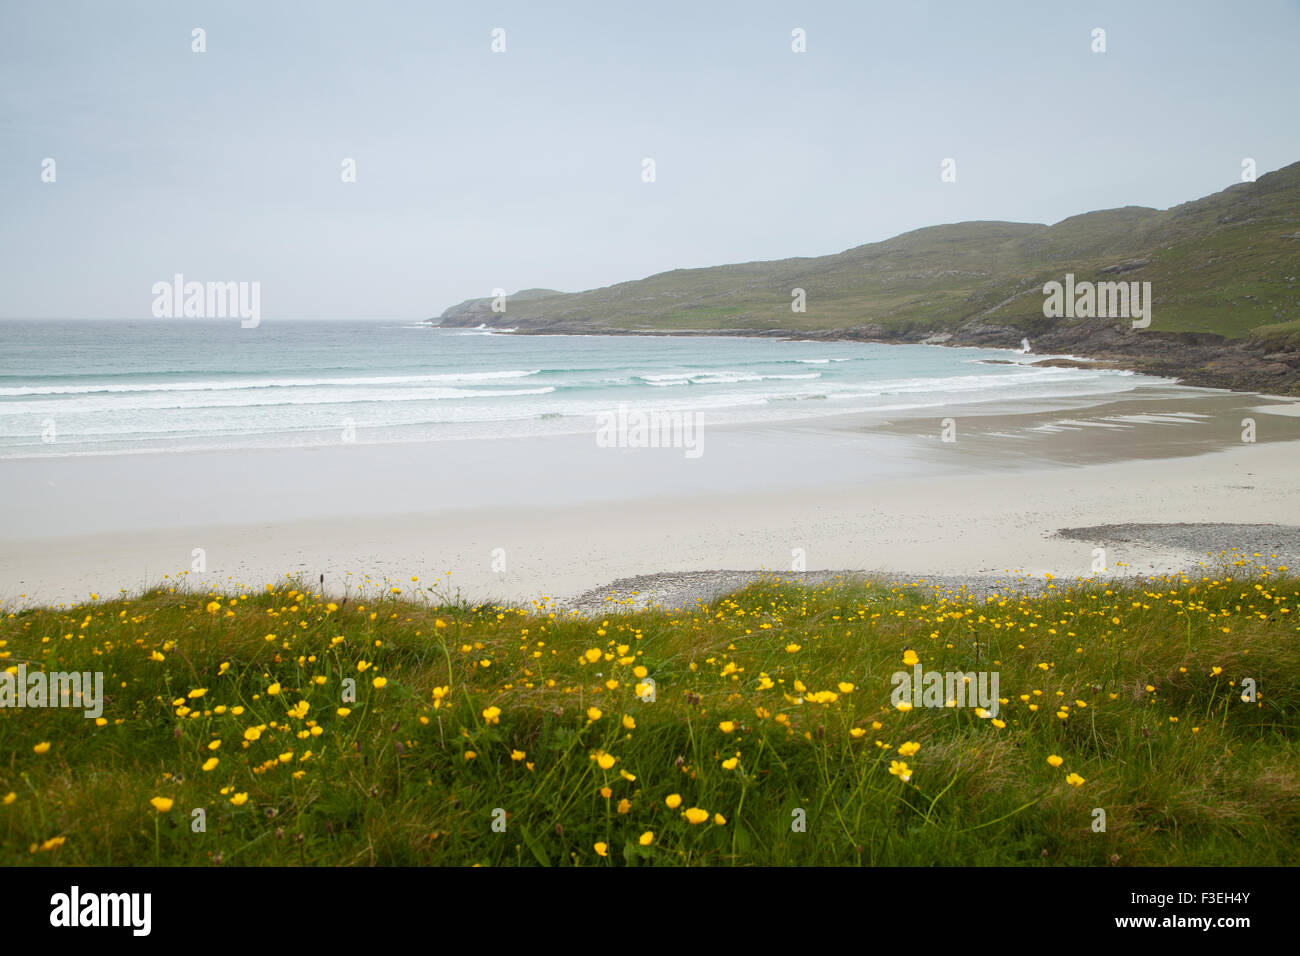 Looking out over the Western facing beach on Vatersay , Vatersay Outer Hebrides, Scotland. - Stock Image